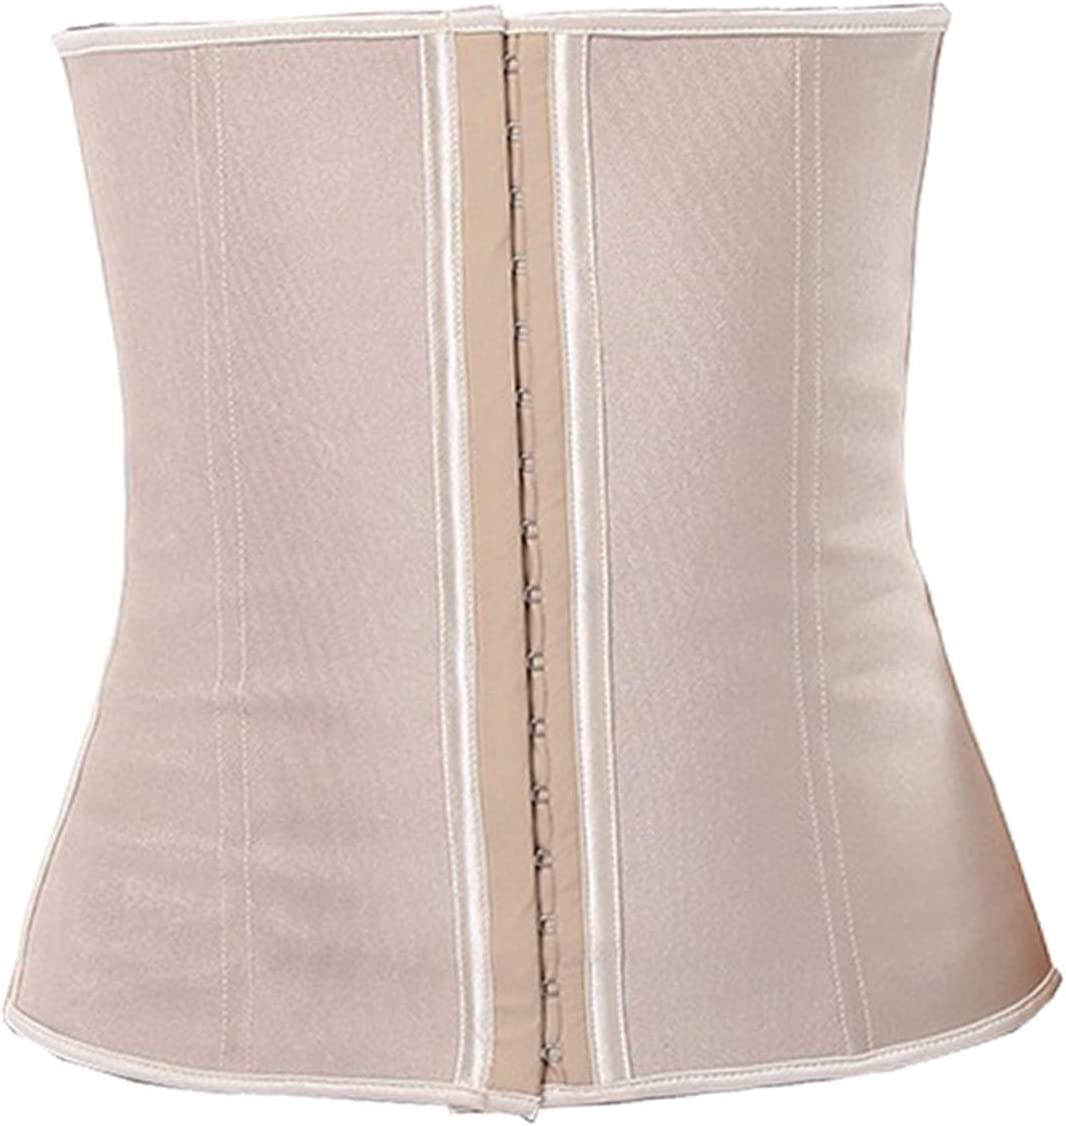 XCYY Rubber Body Shaper for Women Waist Trainer L Shapewear New sales Attention brand Sexy